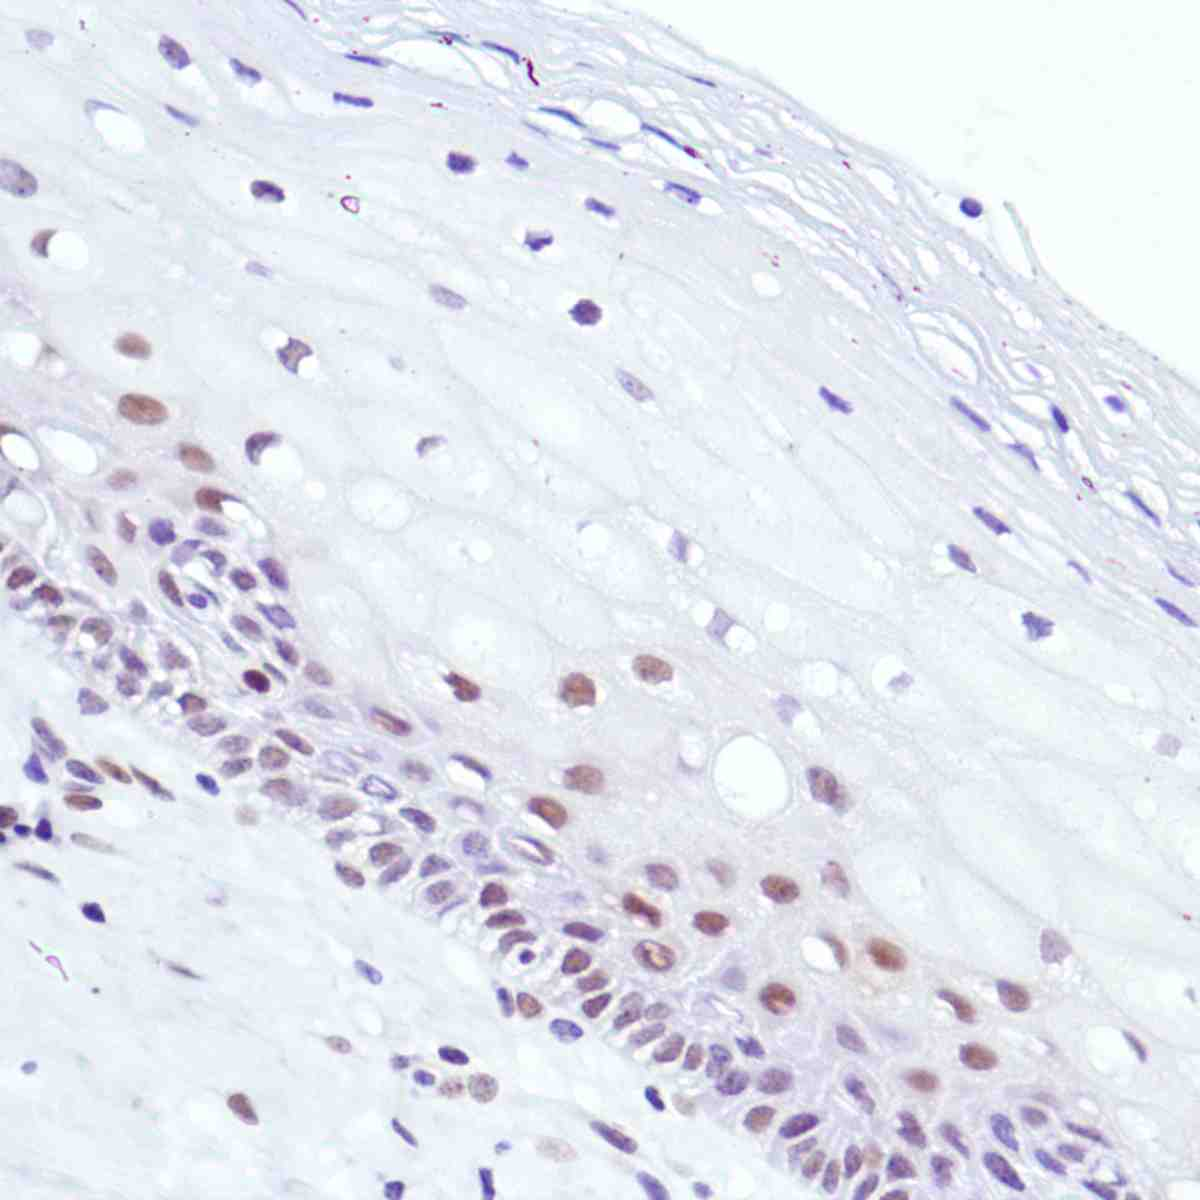 Human Cervix stained with anti-Cyclin D3 antibody